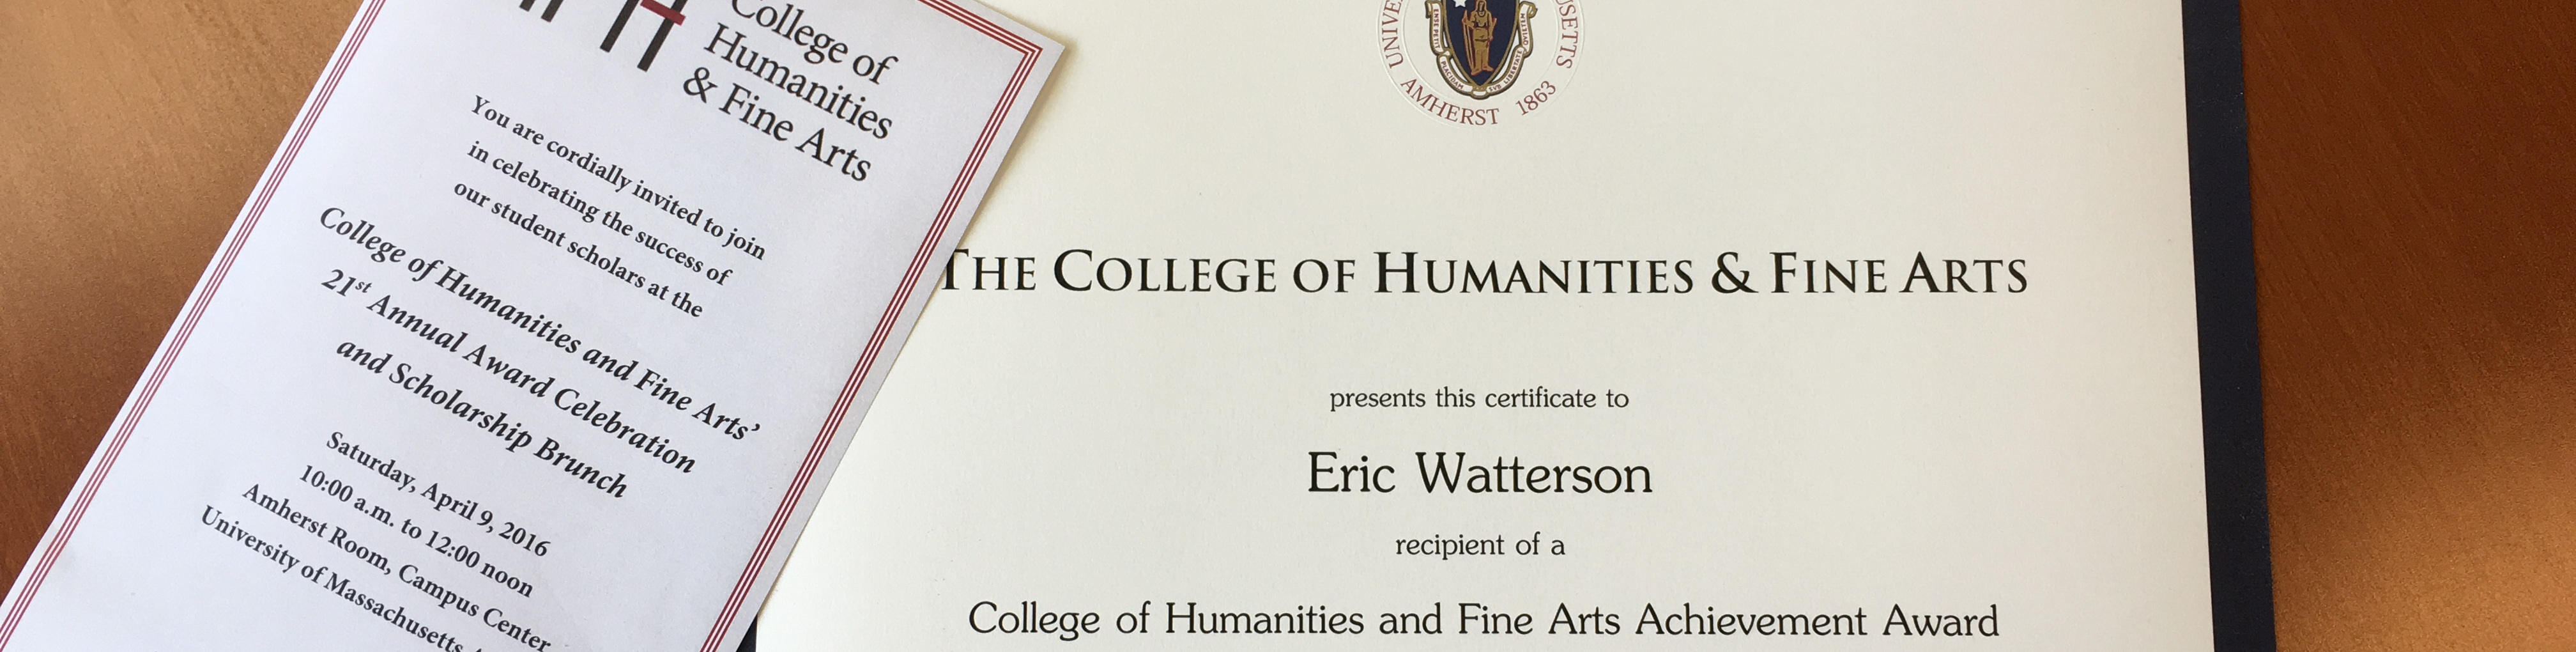 Top half of a certificate awarded by the College of Humanities and Fine Arts